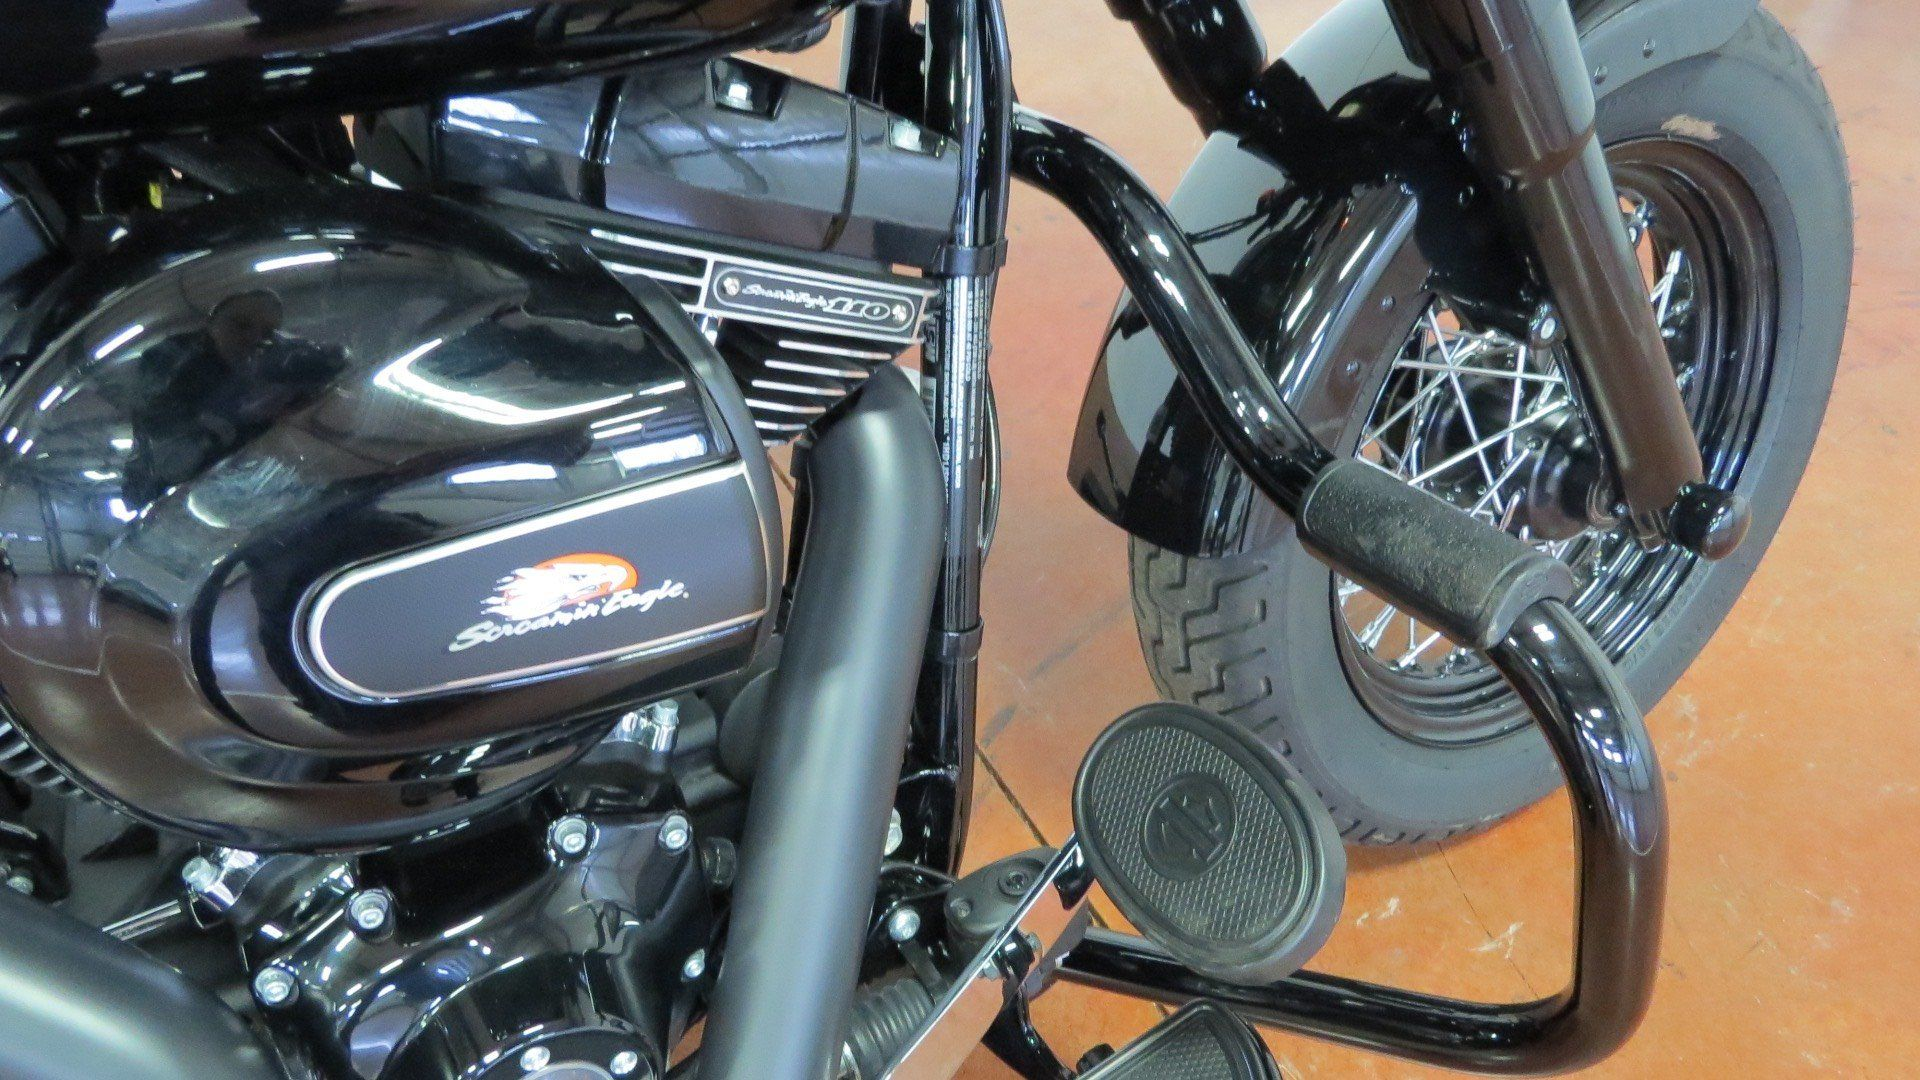 2016 Harley-Davidson Softail Slim® S in Sunbury, Ohio - Photo 10